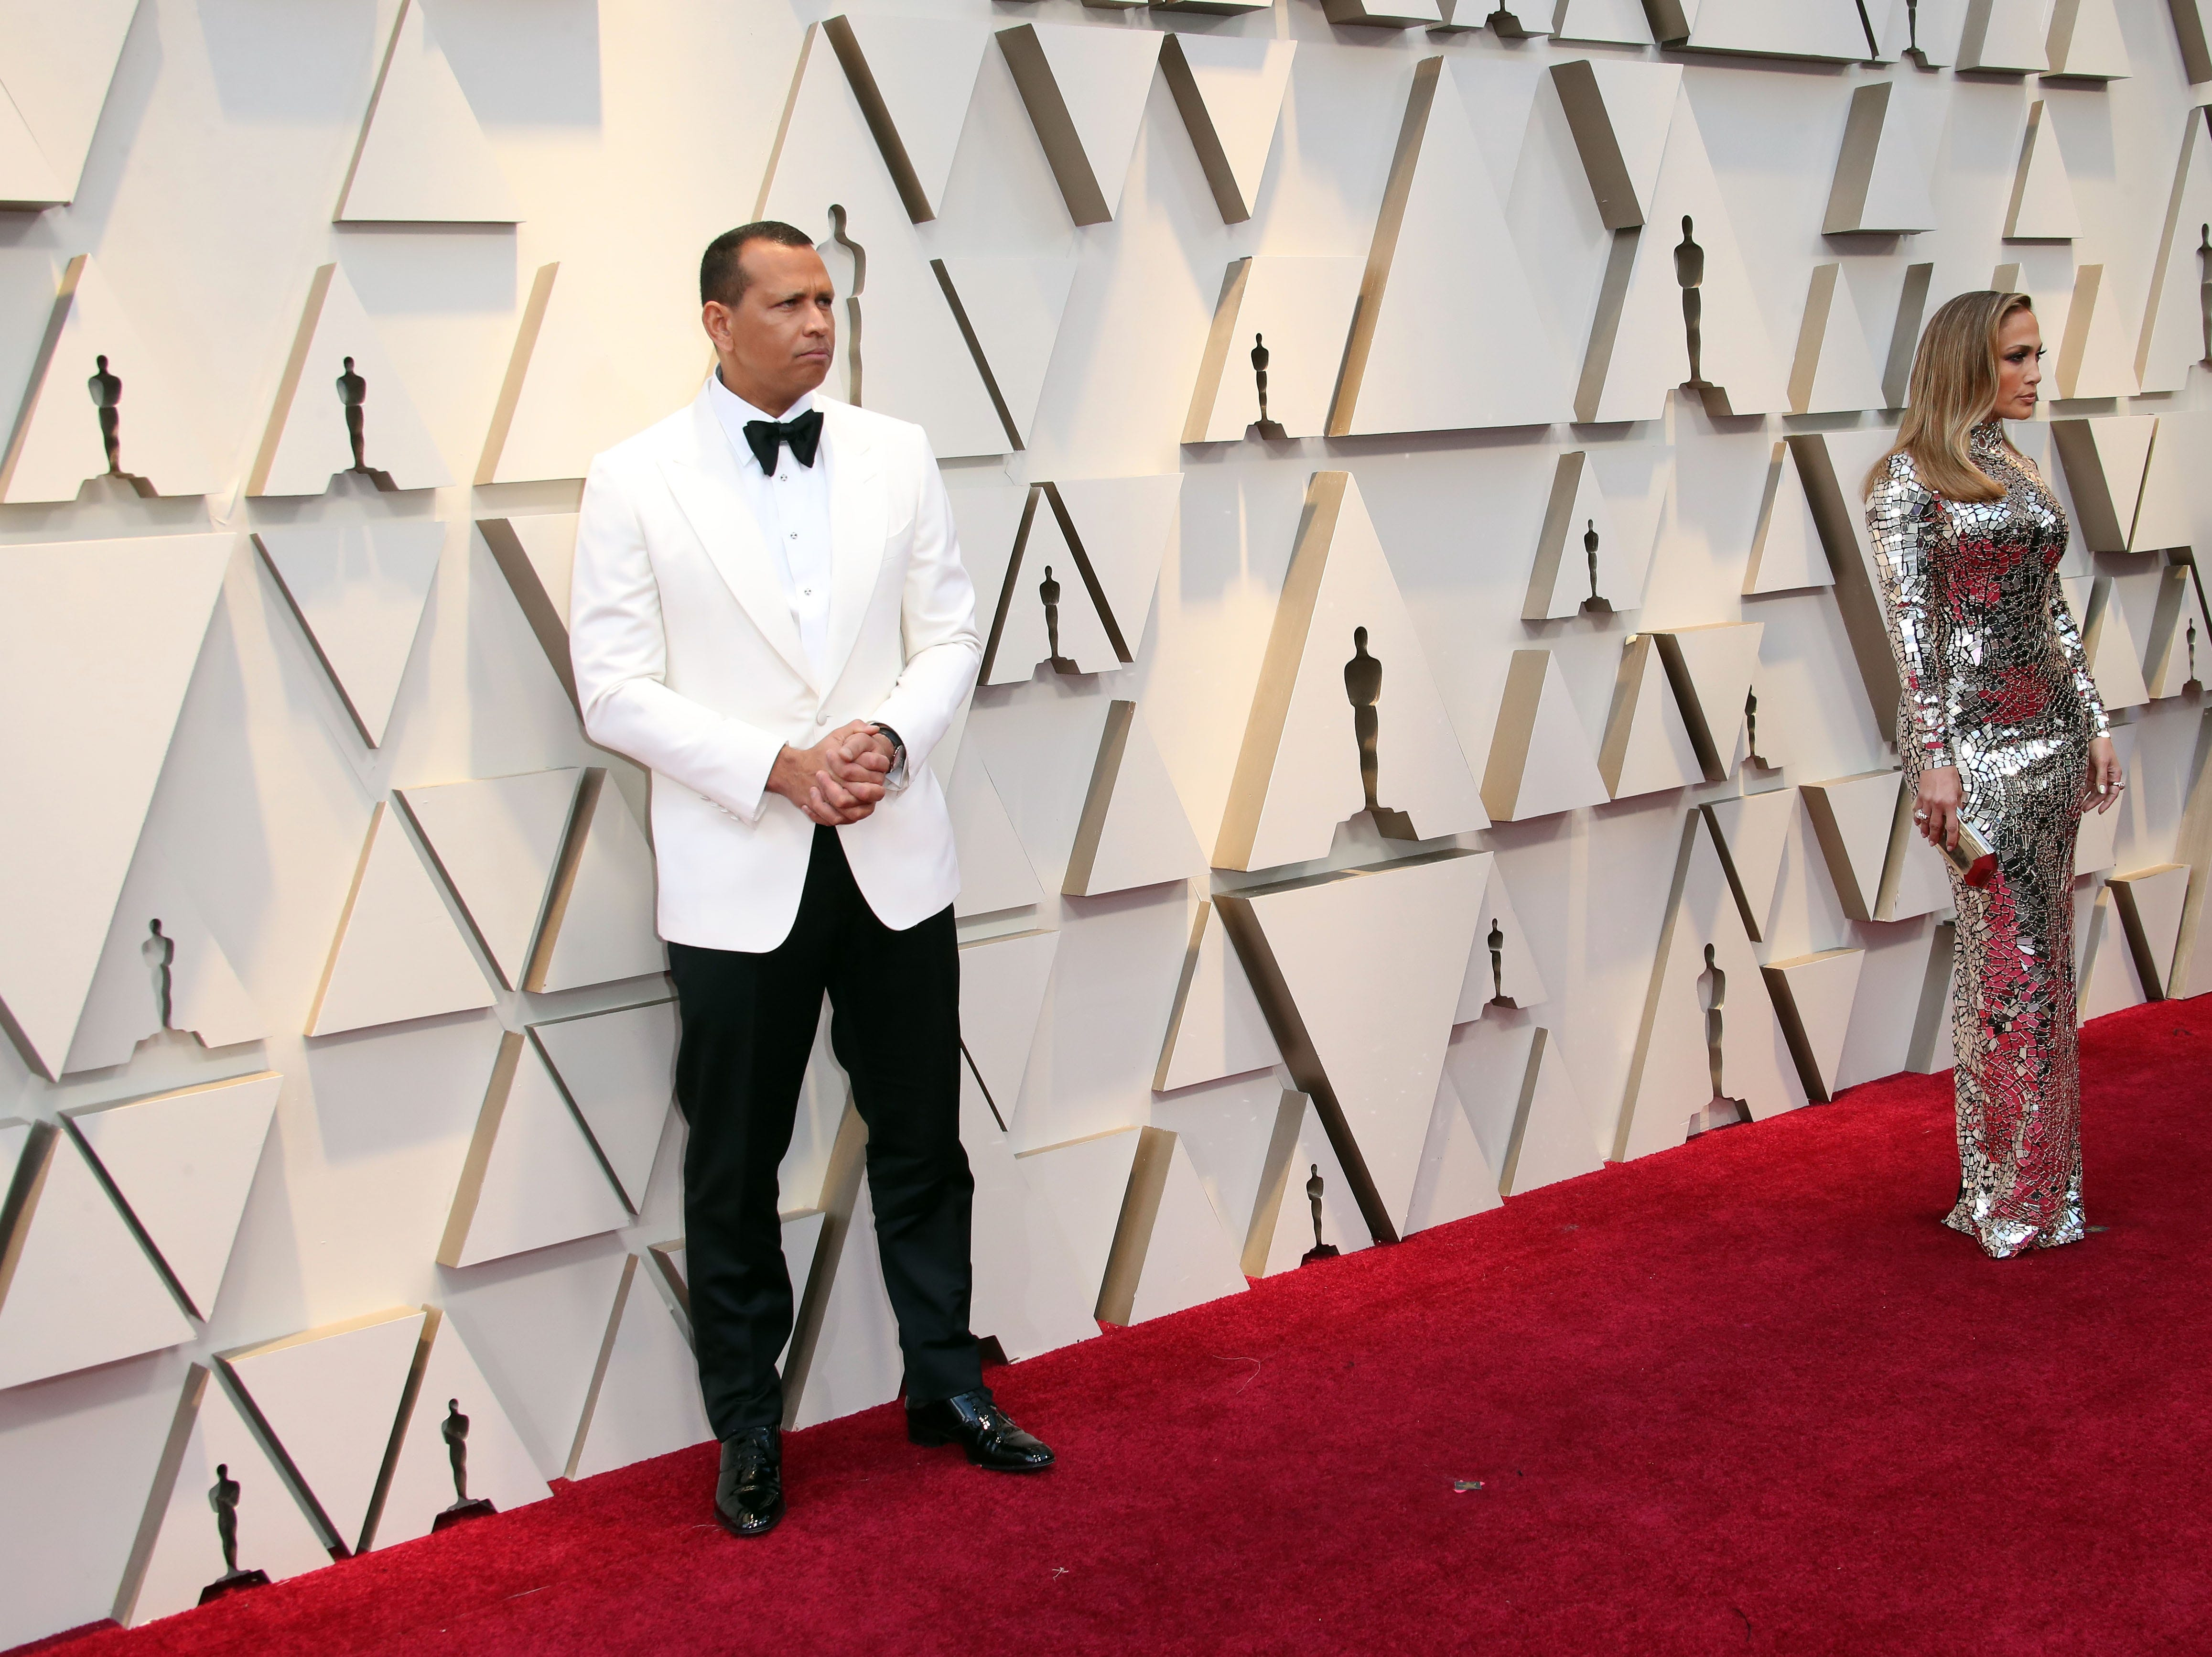 February 24, 2019; Los Angeles, CA, USA; Alex Rodriguez, left and Jennifer Lopez arrive at the 91st Academy Awards at the Dolby Theatre. Mandatory Credit: Dan MacMedan-USA TODAY NETWORK